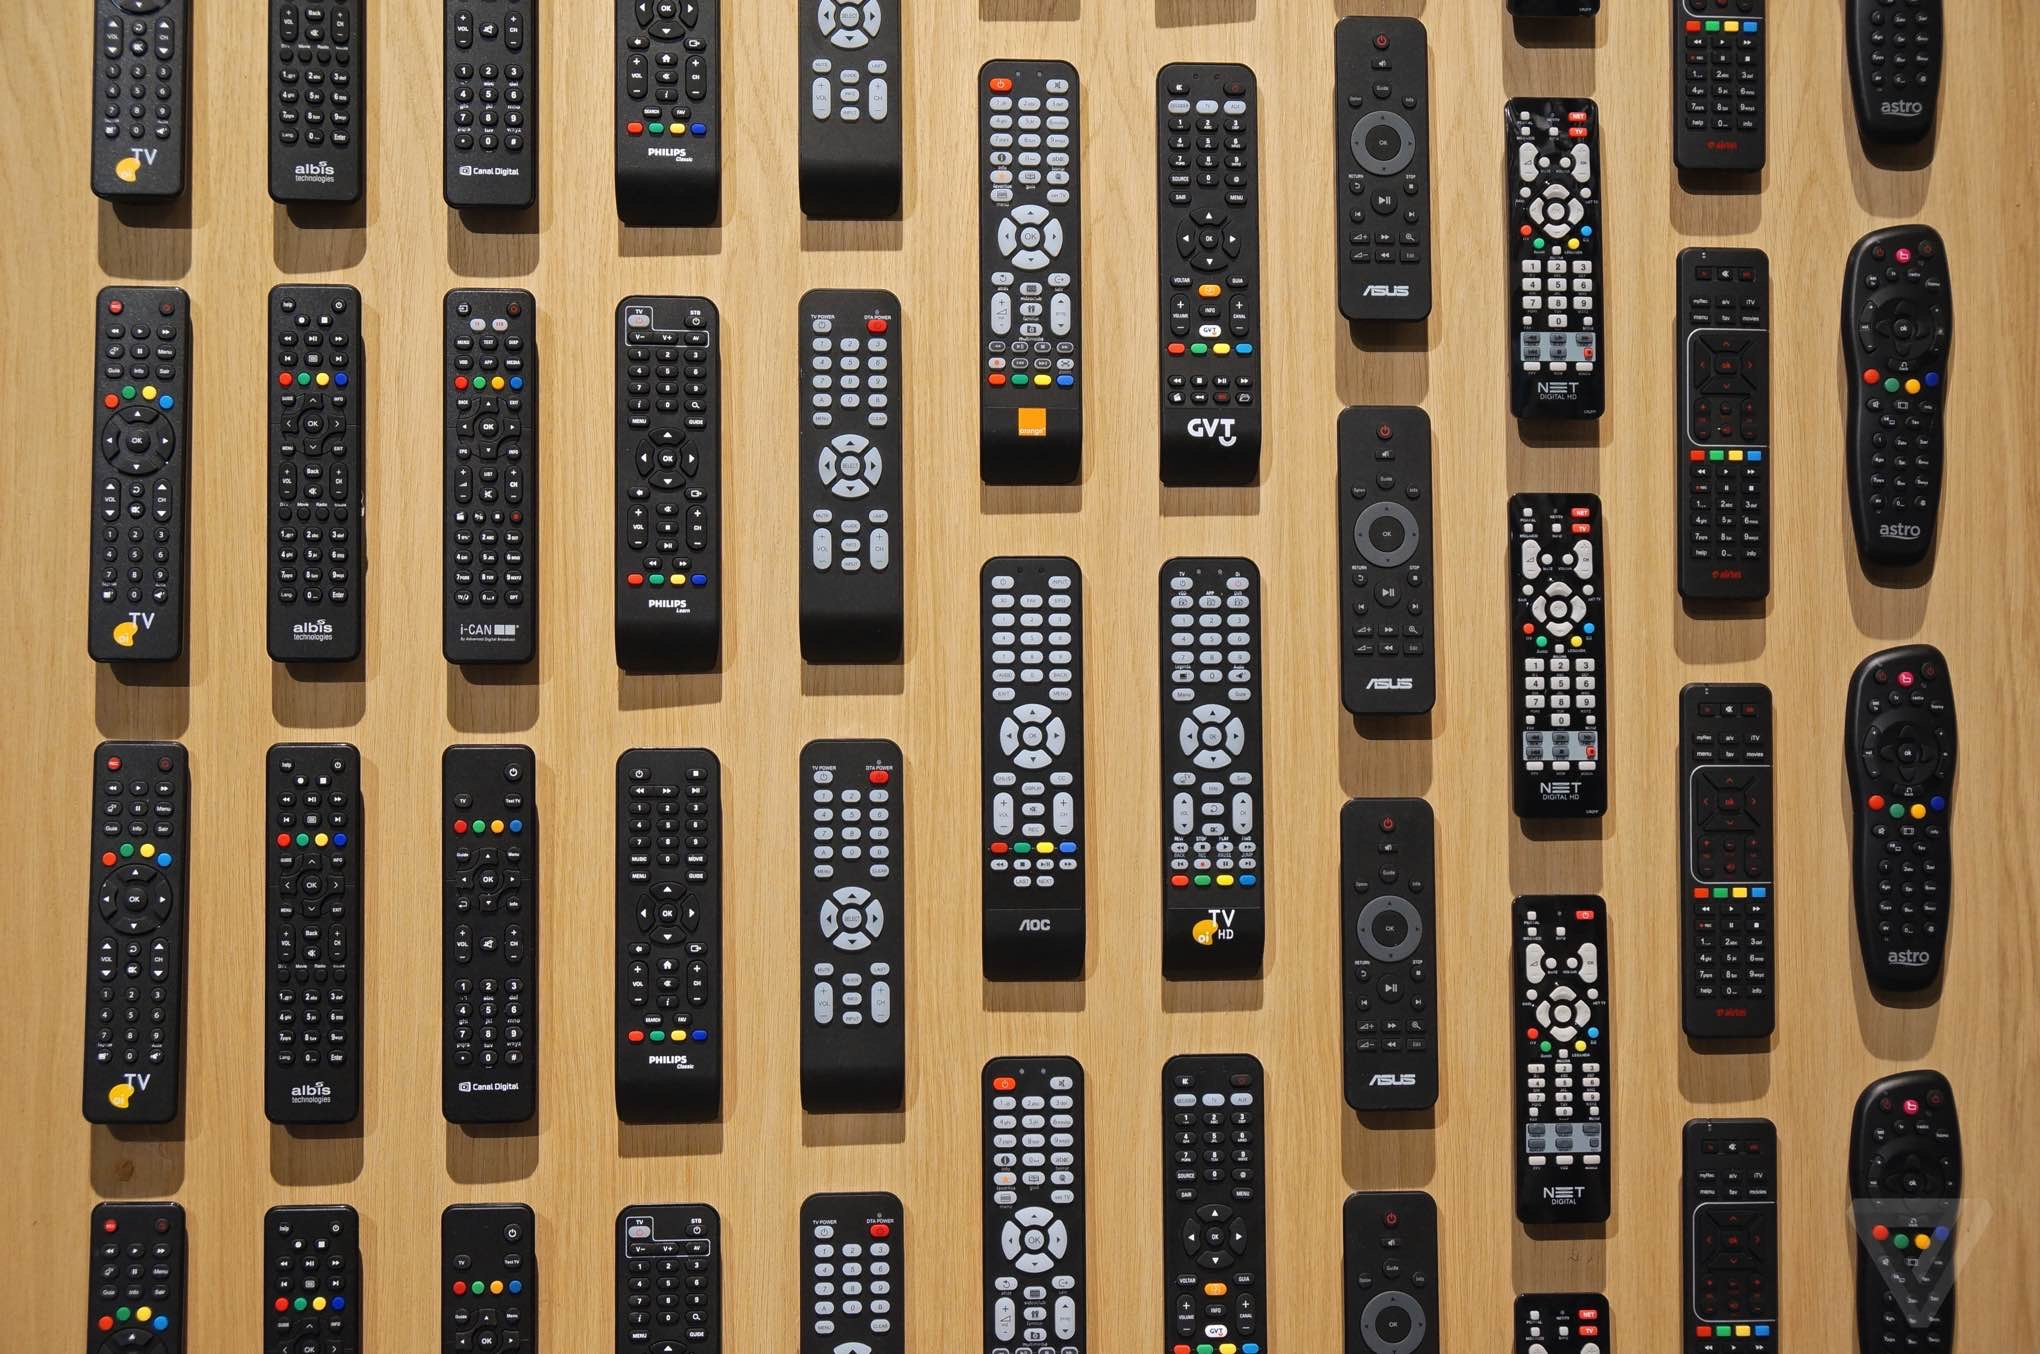 Philips remote controls at CES 2015 - The Verge